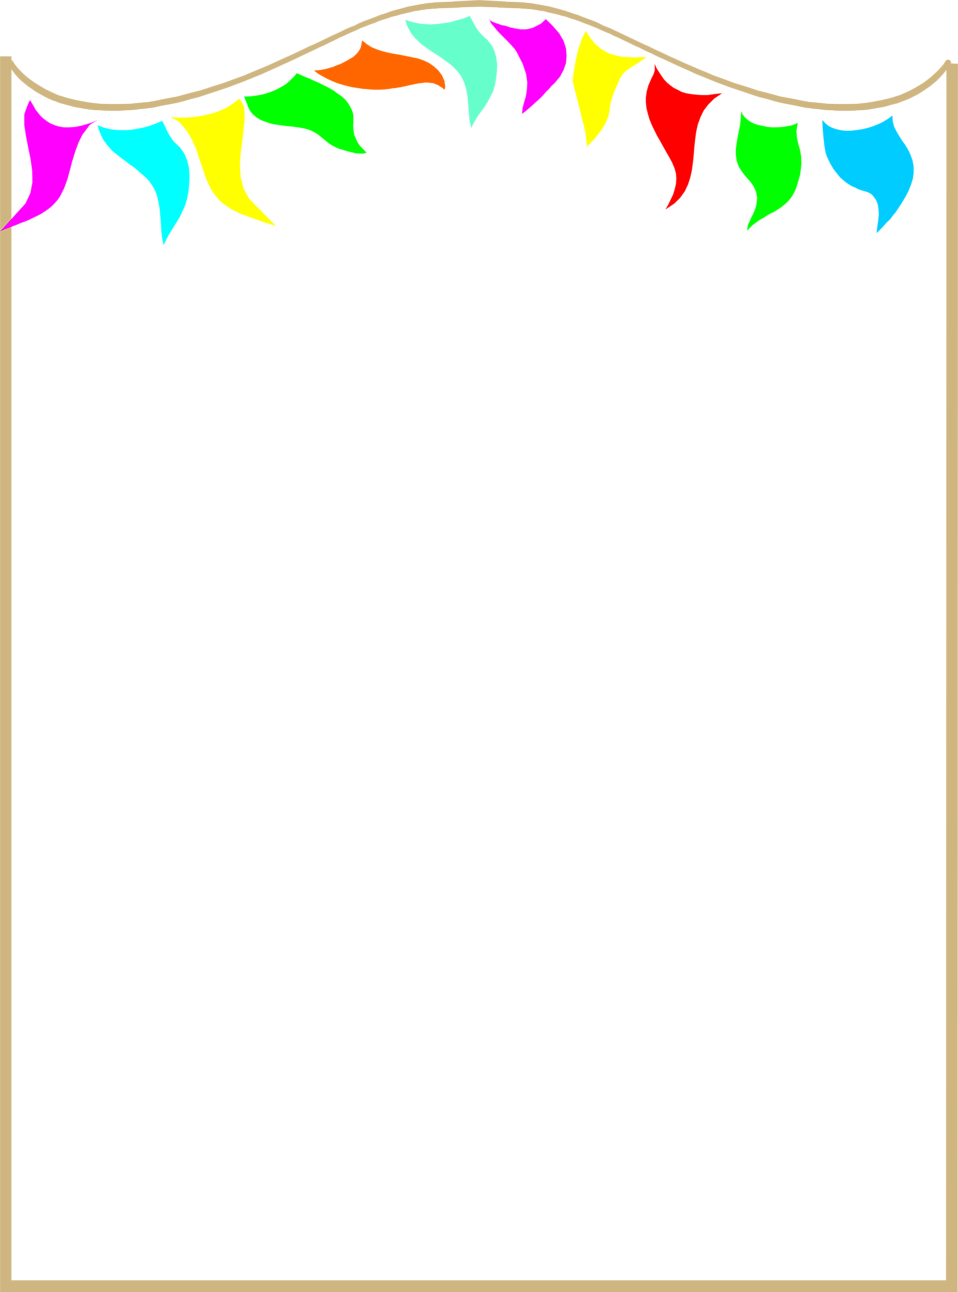 Sun and rainbowborder clipart clip library download Illustration of a blank frame border with colorful pennants : Free ... clip library download